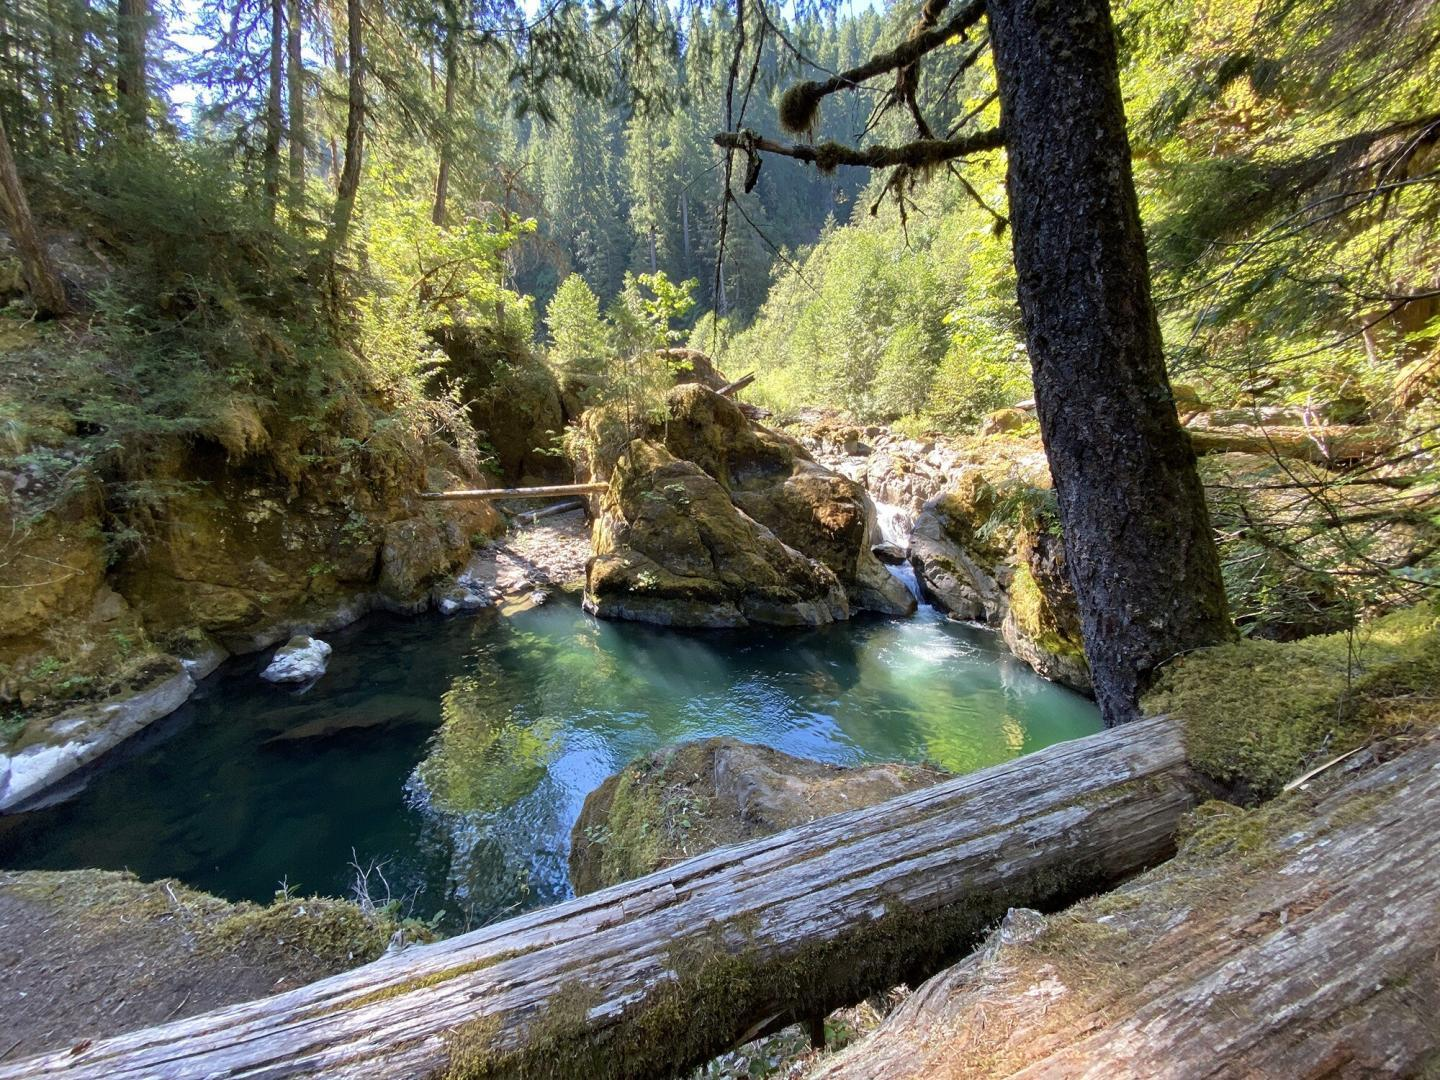 The proposed Middle Santiam Wild and Scenic River. Source: Chanda LeGue, Oregon Wild.